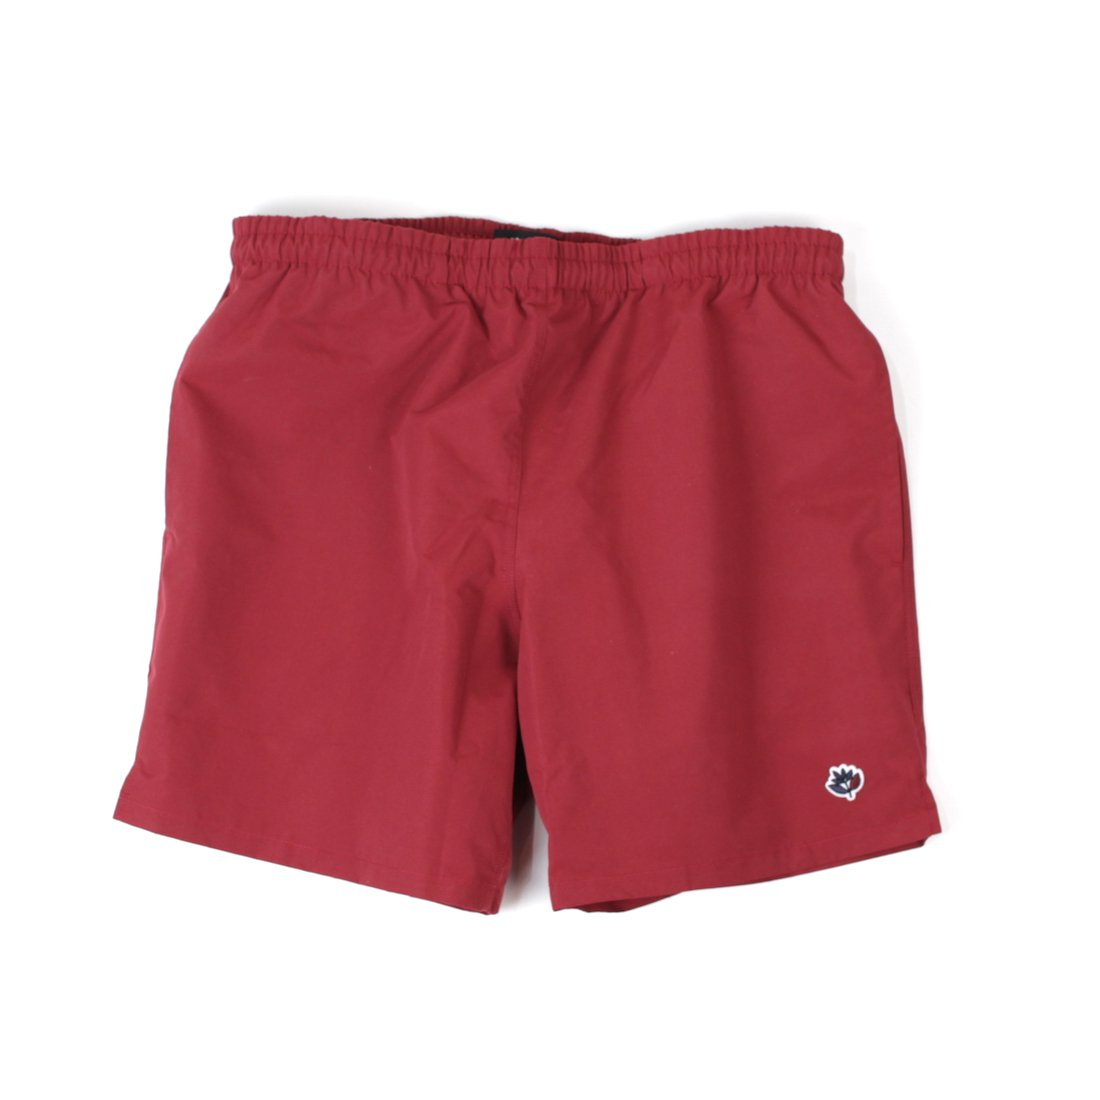 【MAGENTA】Nylon Shorts - Burgundy